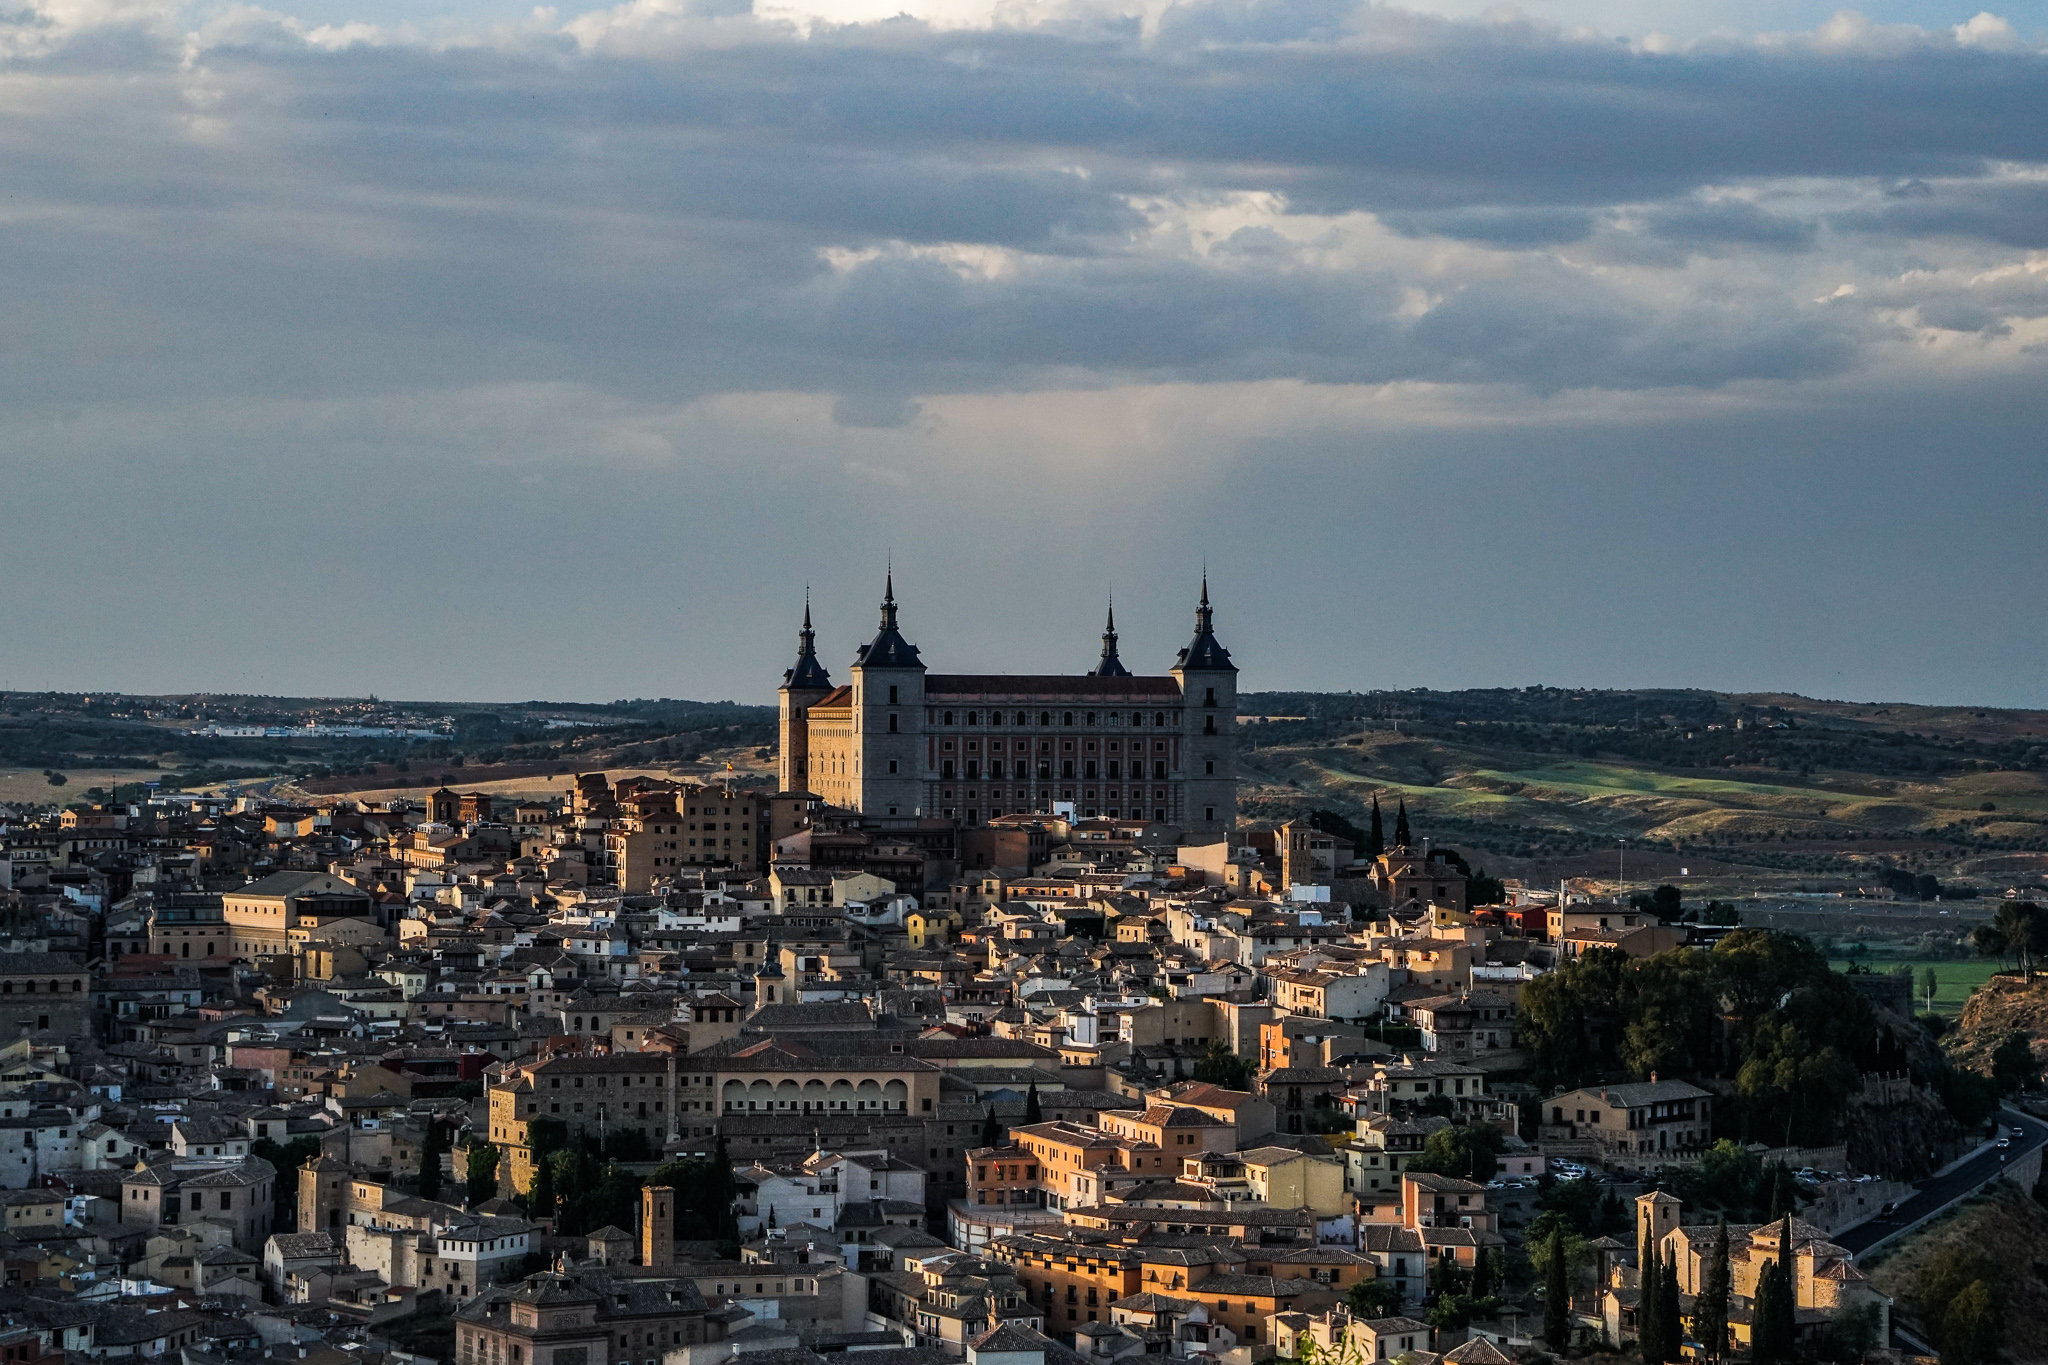 View from El Parador de Toledo.